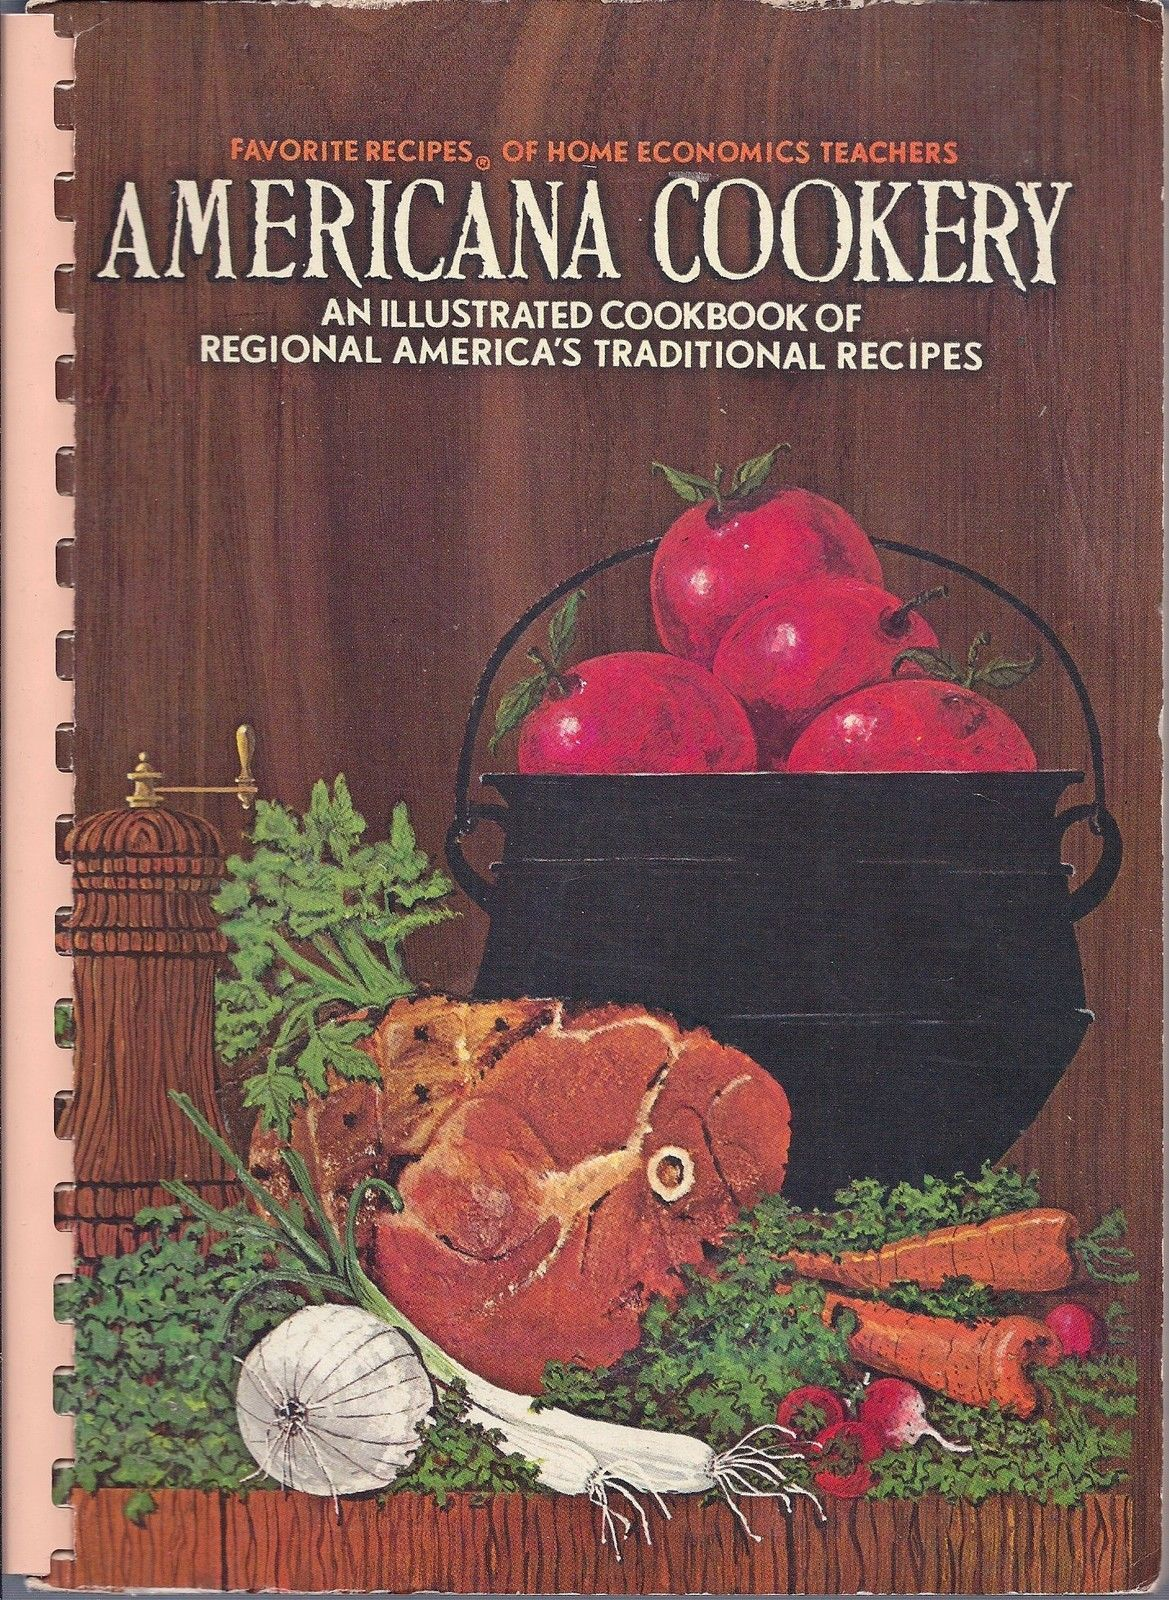 Primary image for Americana Cookery Favorites Recipes of Home Economics Teachers 1971